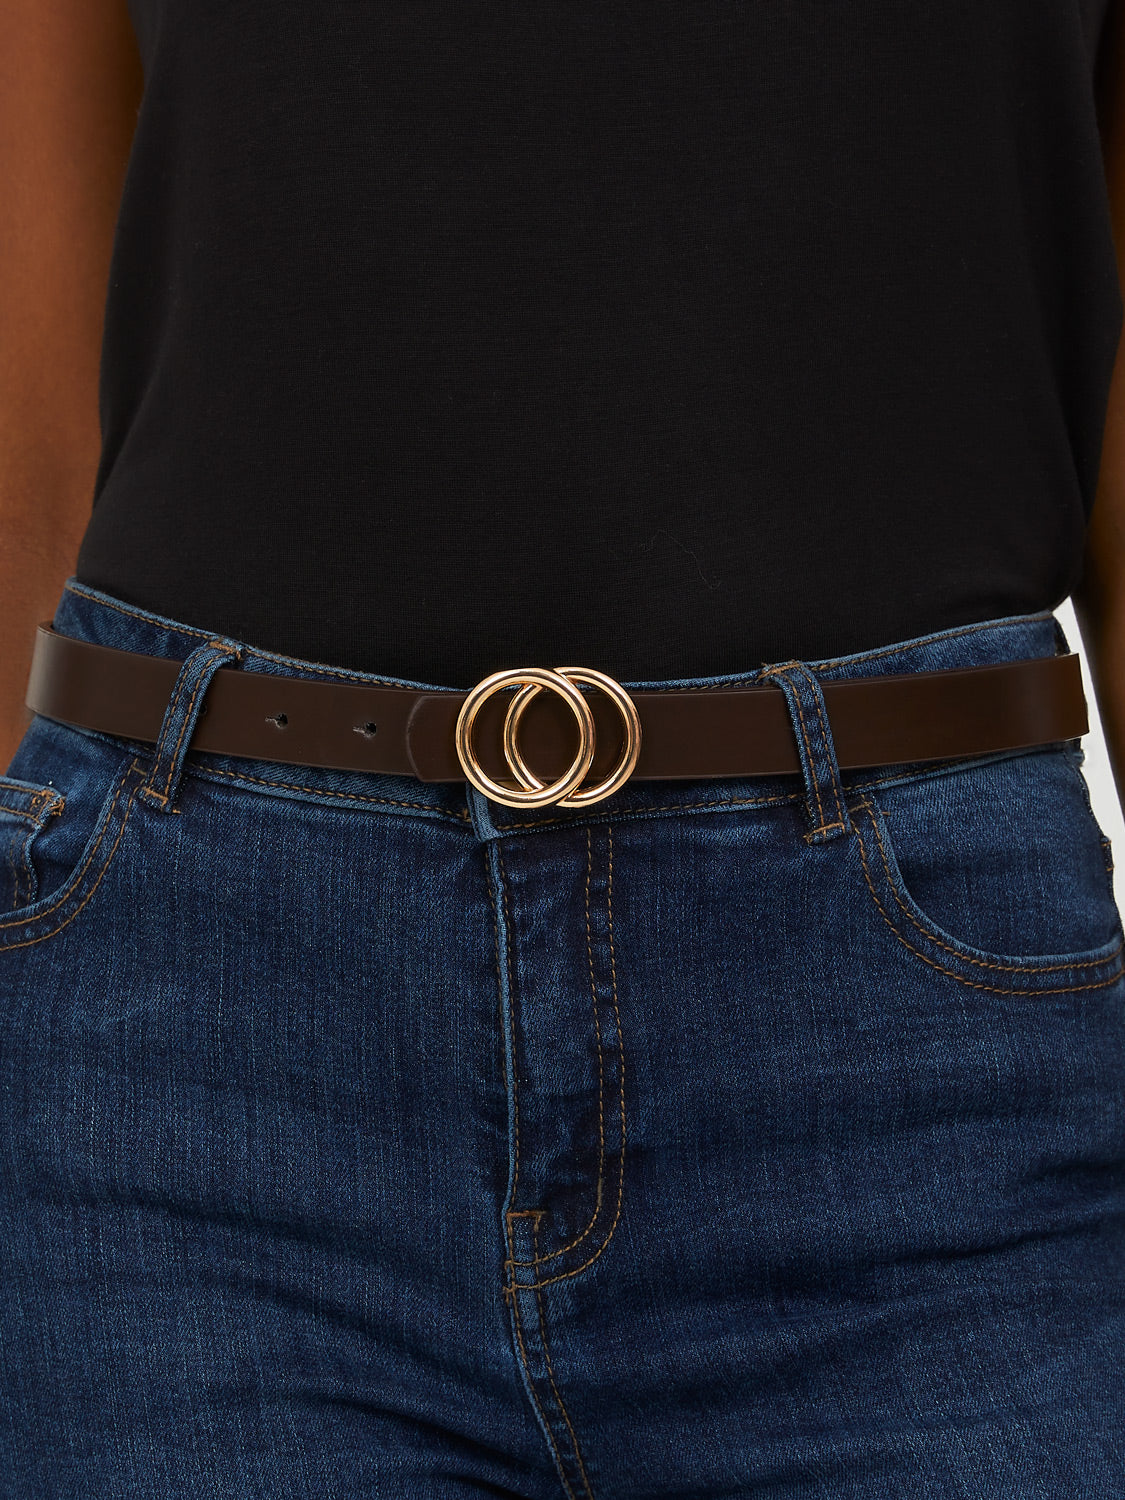 Set of 2 Ring Buckle Belts